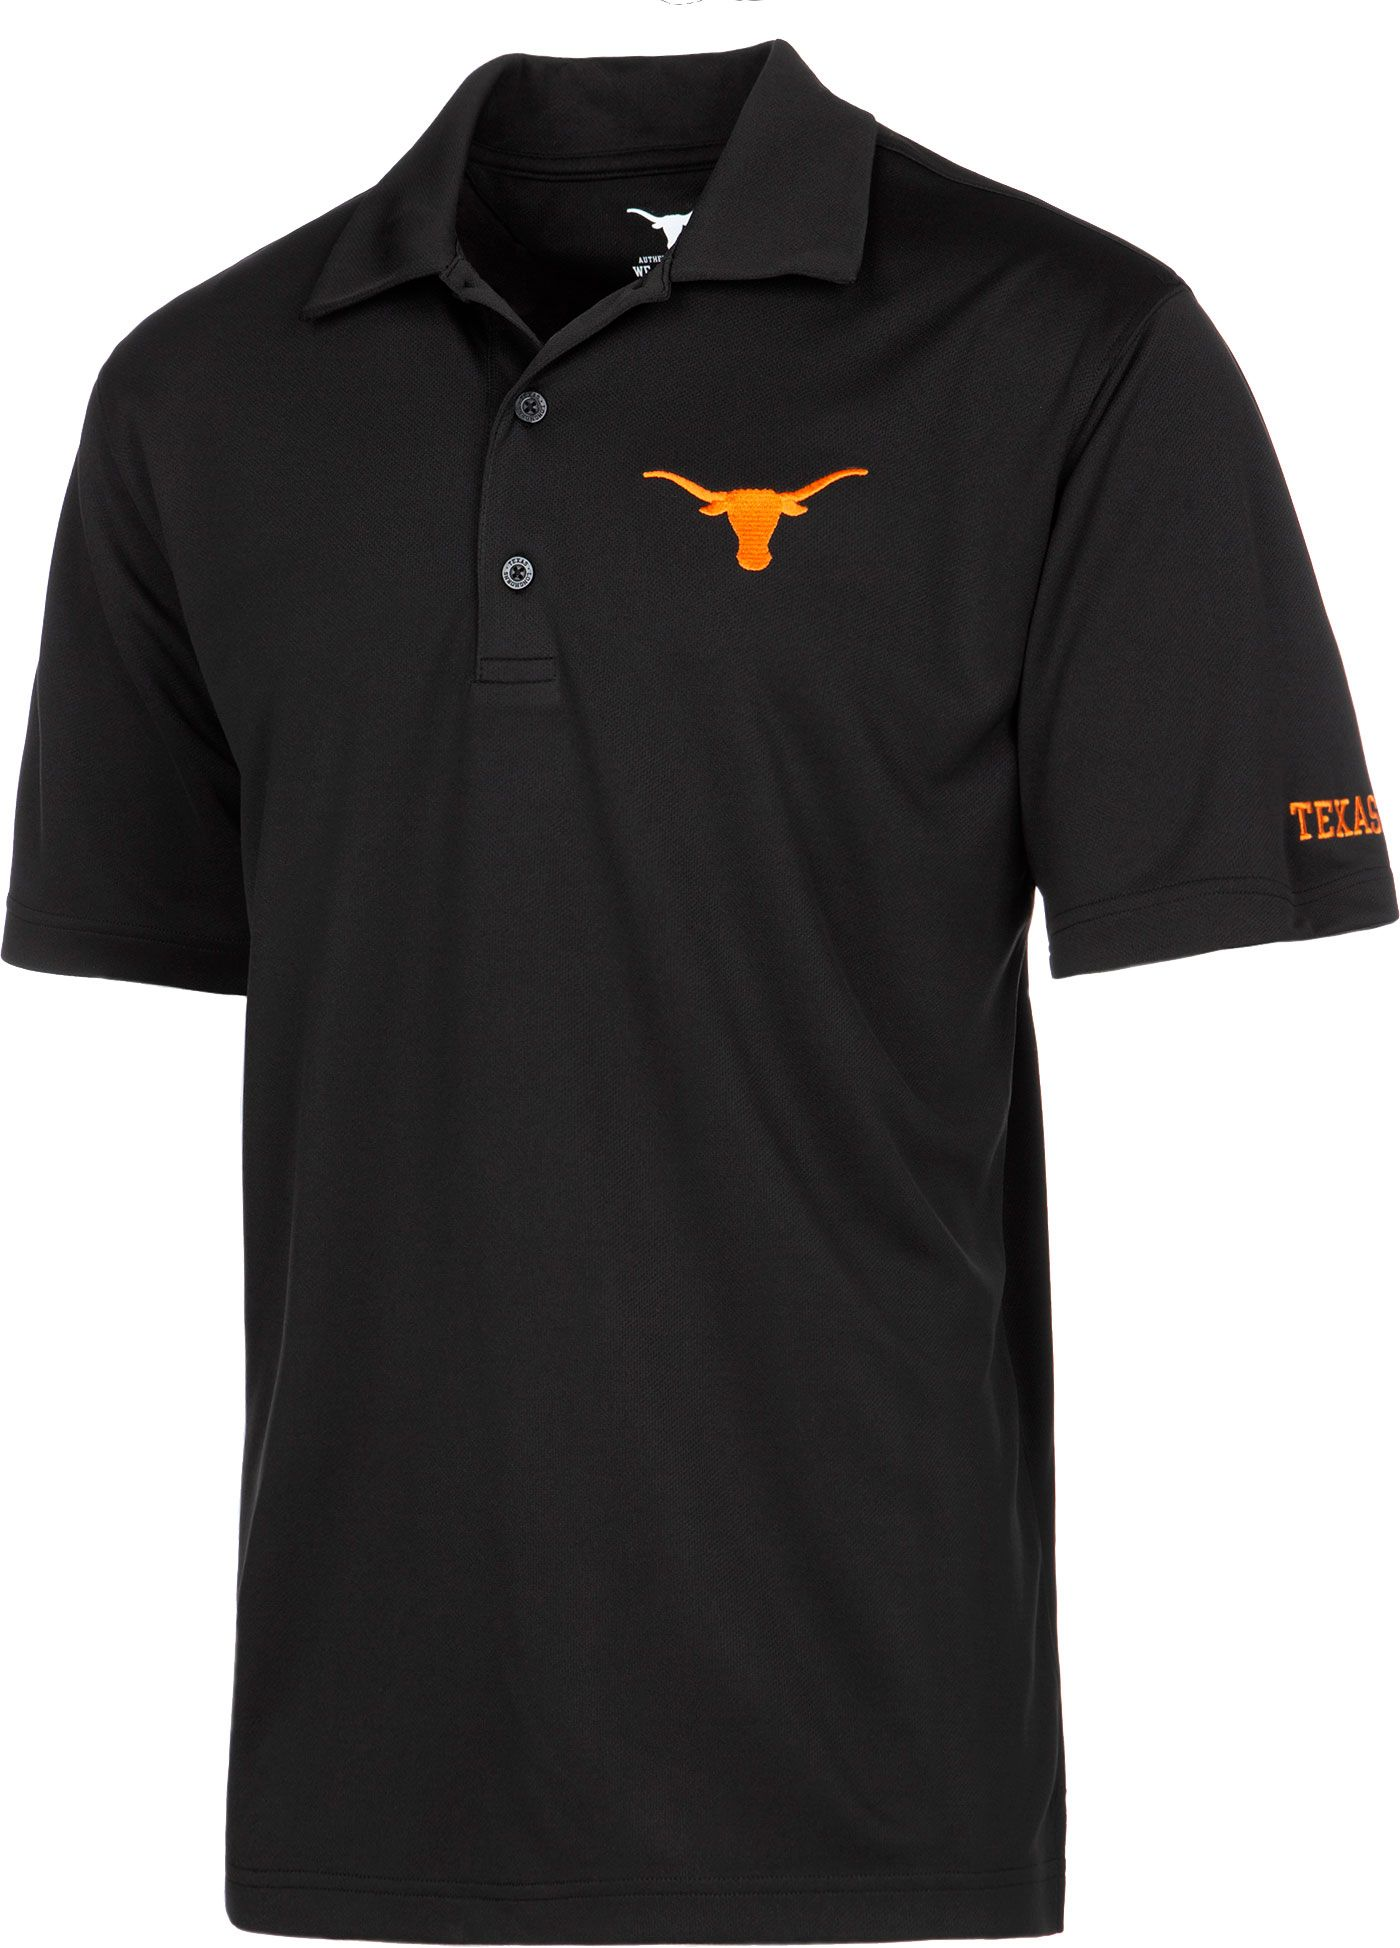 University of Texas Authentic Apparel Men's Texas Longhorns Ambition Black Polo